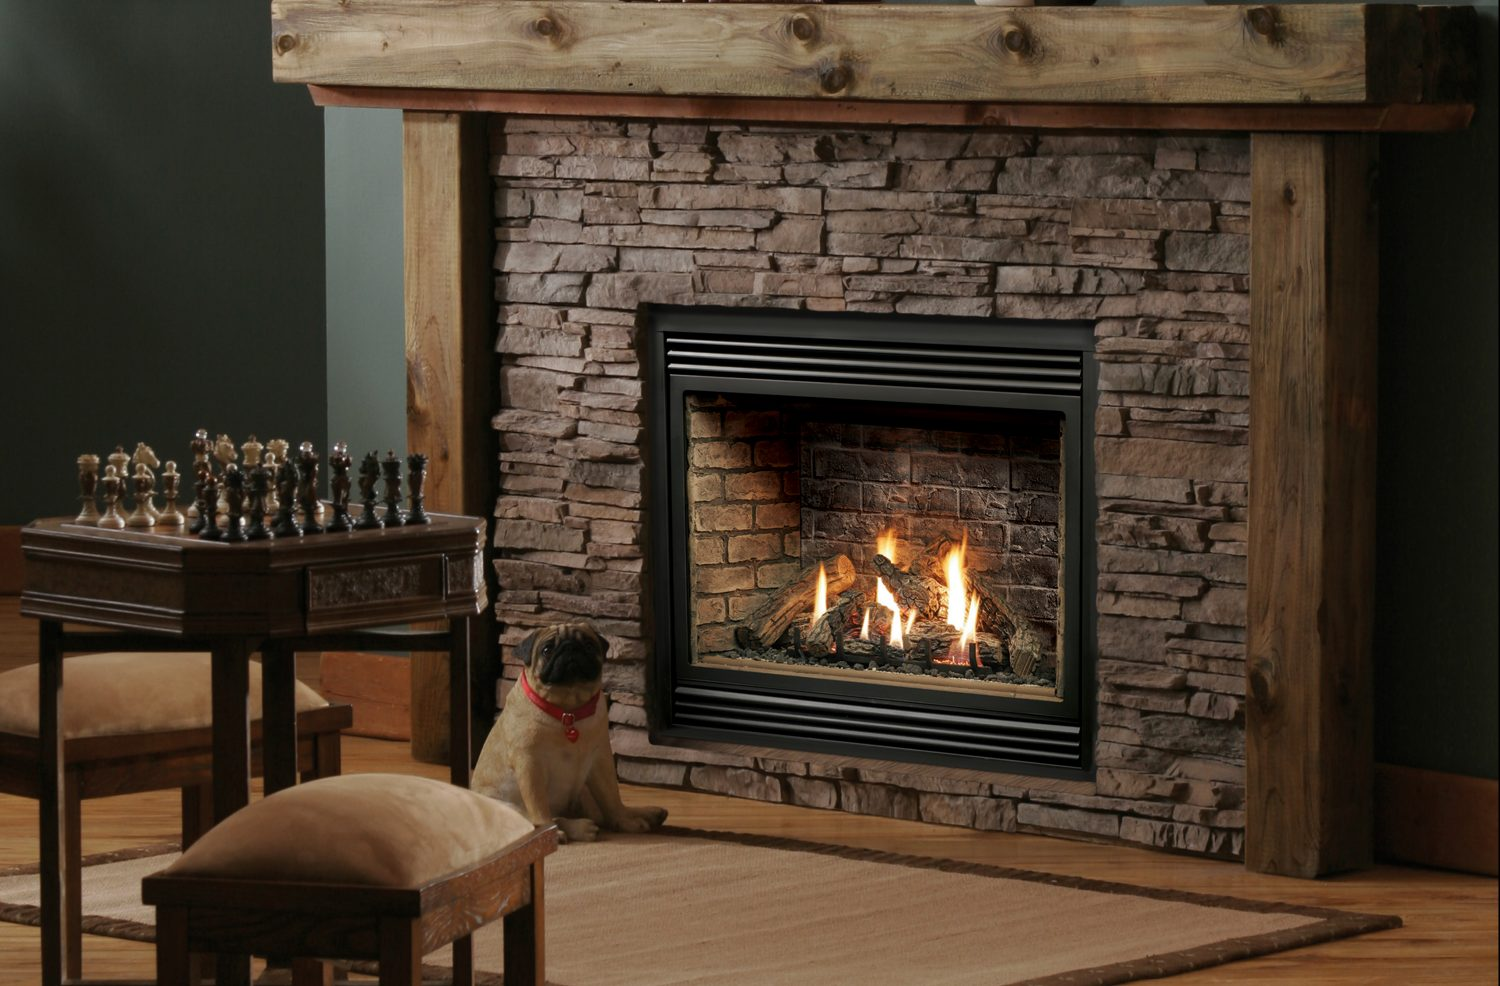 mp fireplace photos mario fireplaces on inc ypapi robinet m windsor canpages kingsman lg page pic rd by